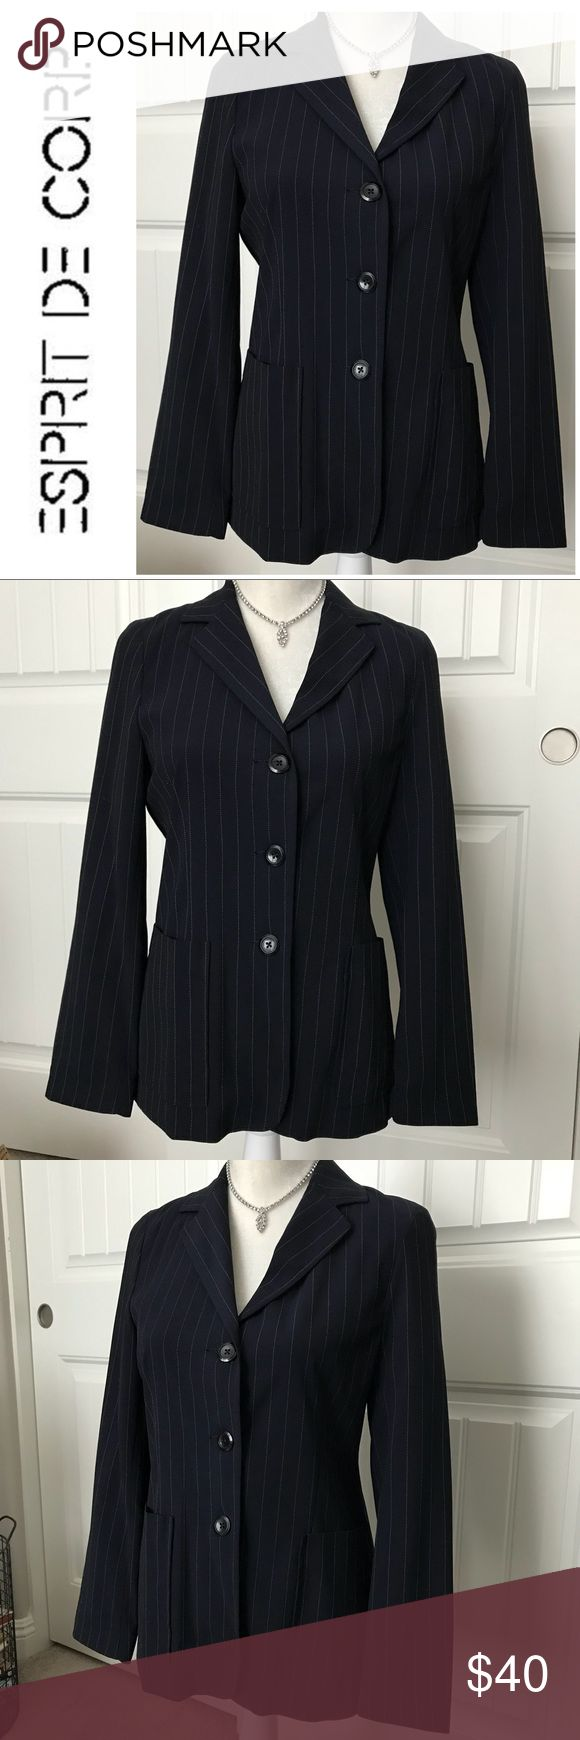 Gorgeous Esprit Navy Pinstripe Blazer Size 3/4 Gorgeous Vintage Esprit de Corp Navy Pinstripe Blazer Size 3/4 in excellent vintage condition. Light weight material. This garment is not lined. Oversized pockets and lapel make it fun and sassy. Would look amazing with white slacks or casual with flared capris. Truly a beautiful piece of iconic clothing...a true gem. Esprit Jackets & Coats Blazers